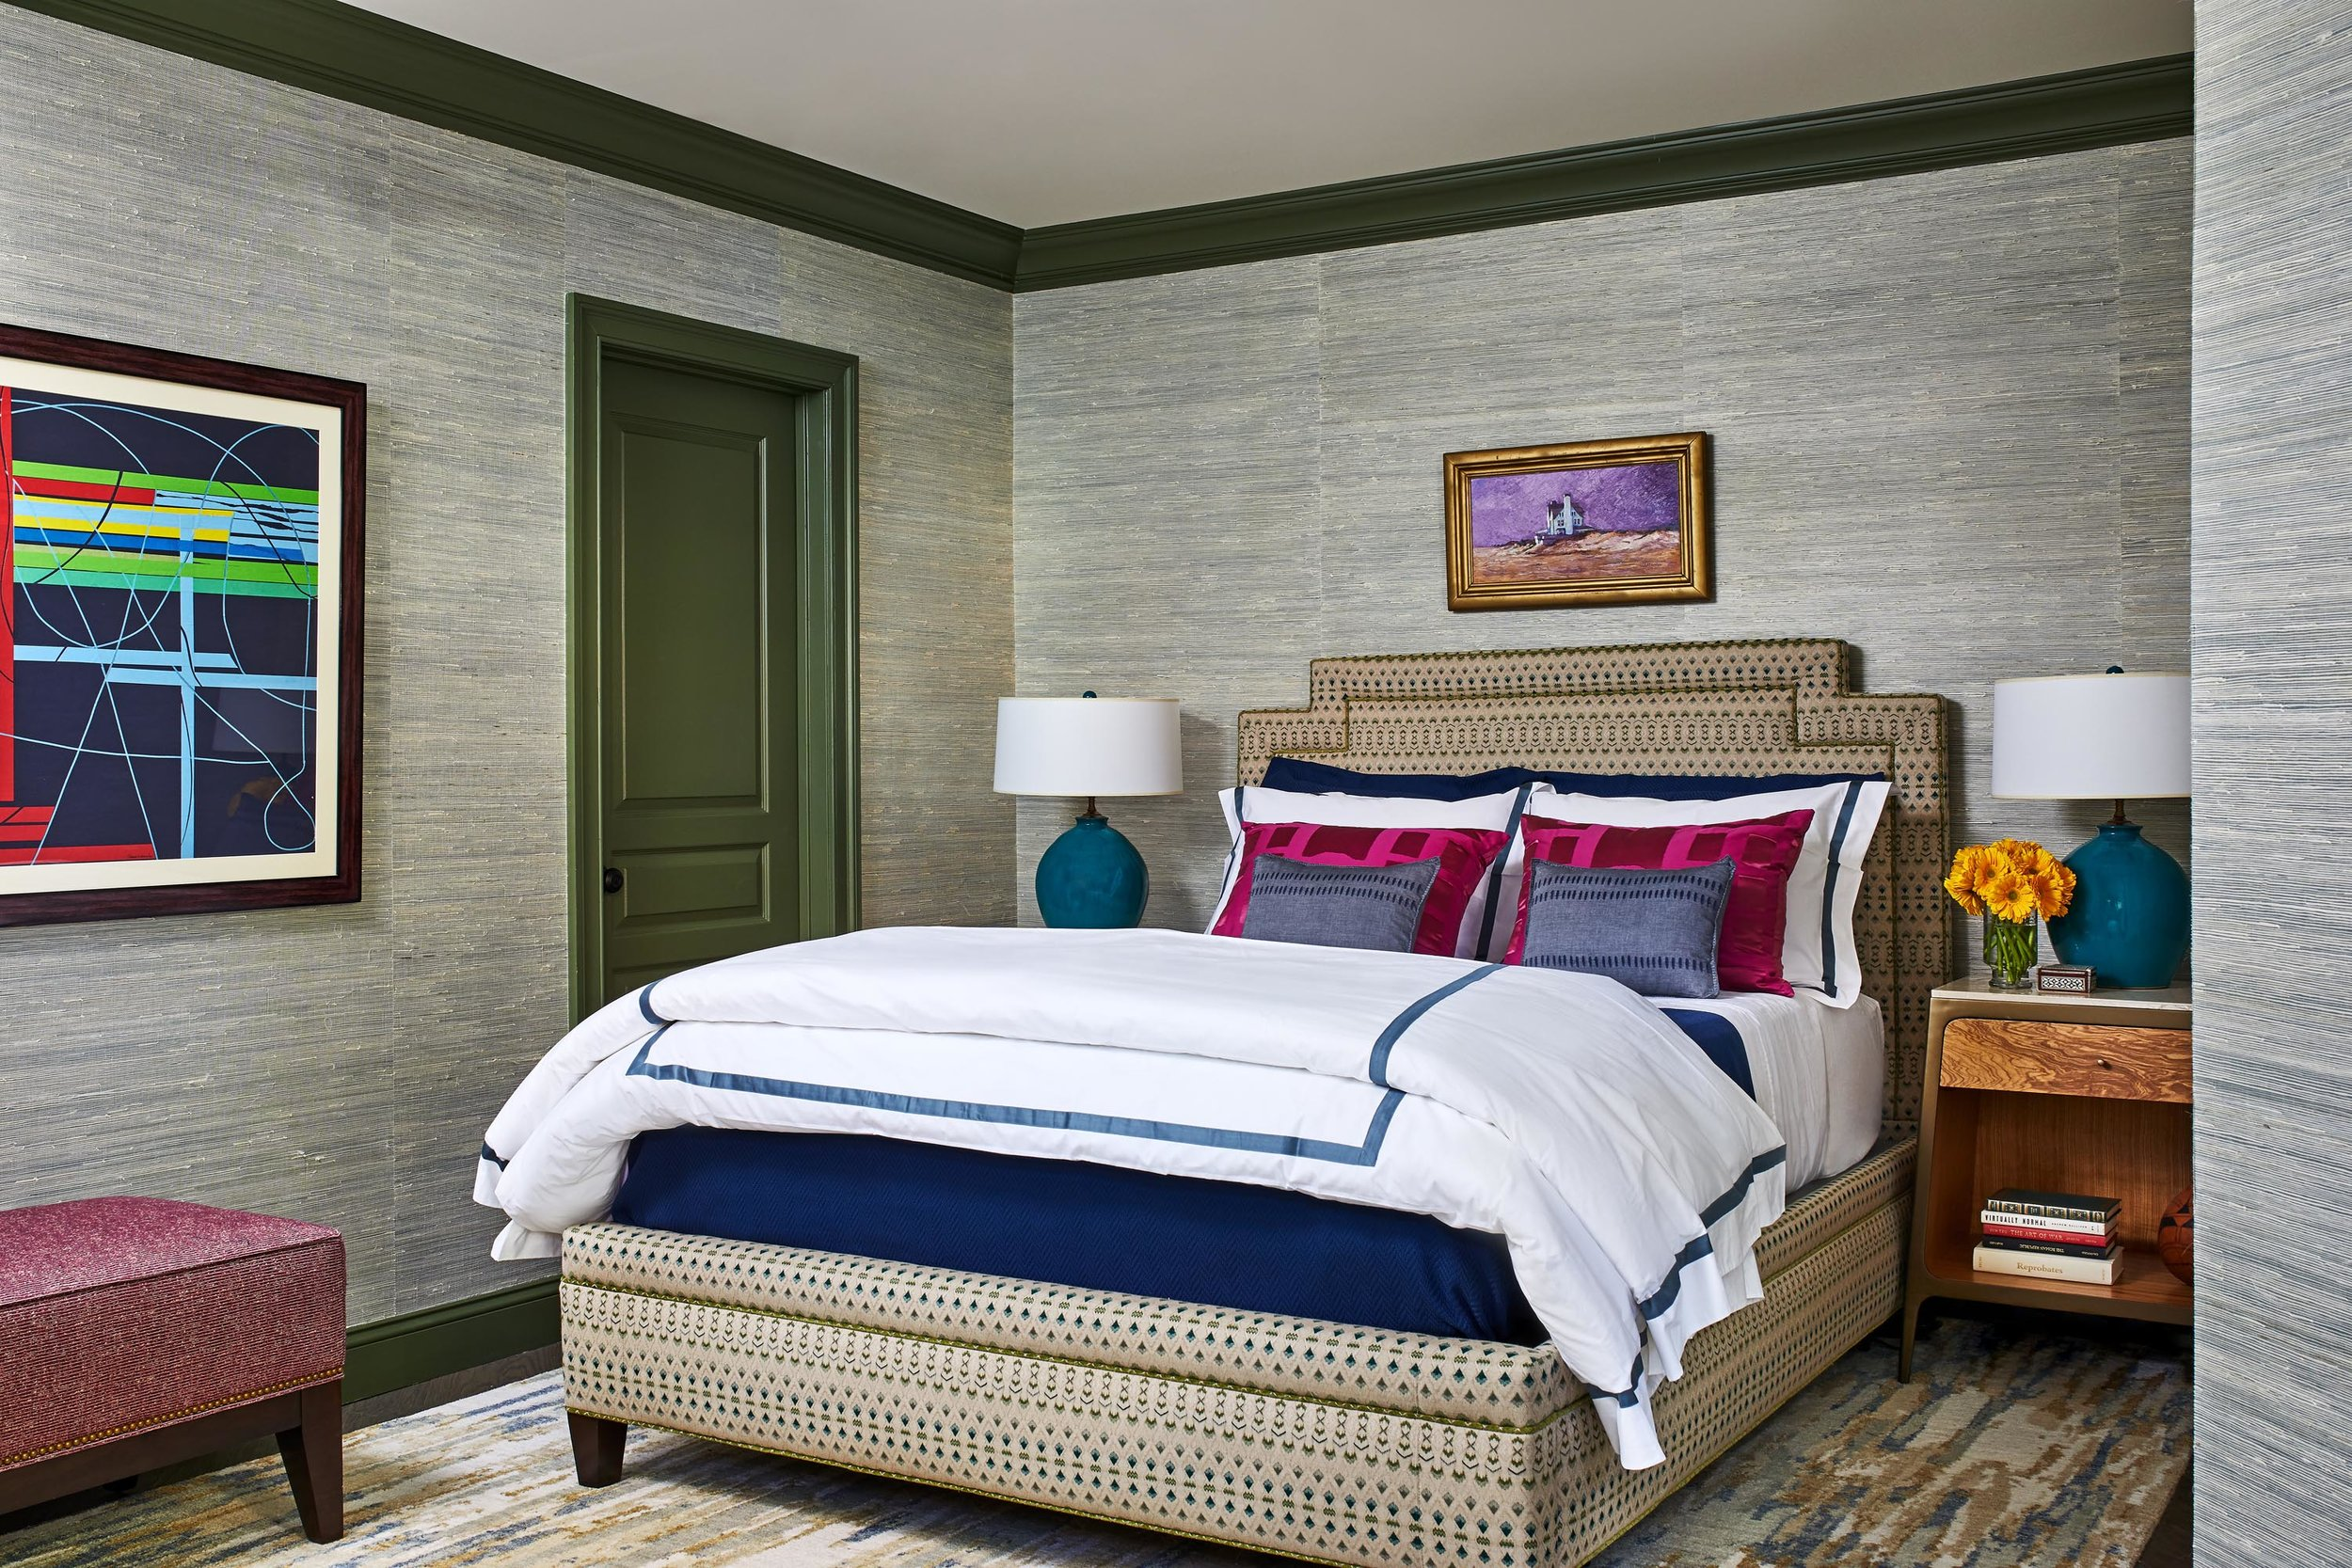 Boston bedroom interior design by Dane Austin Design